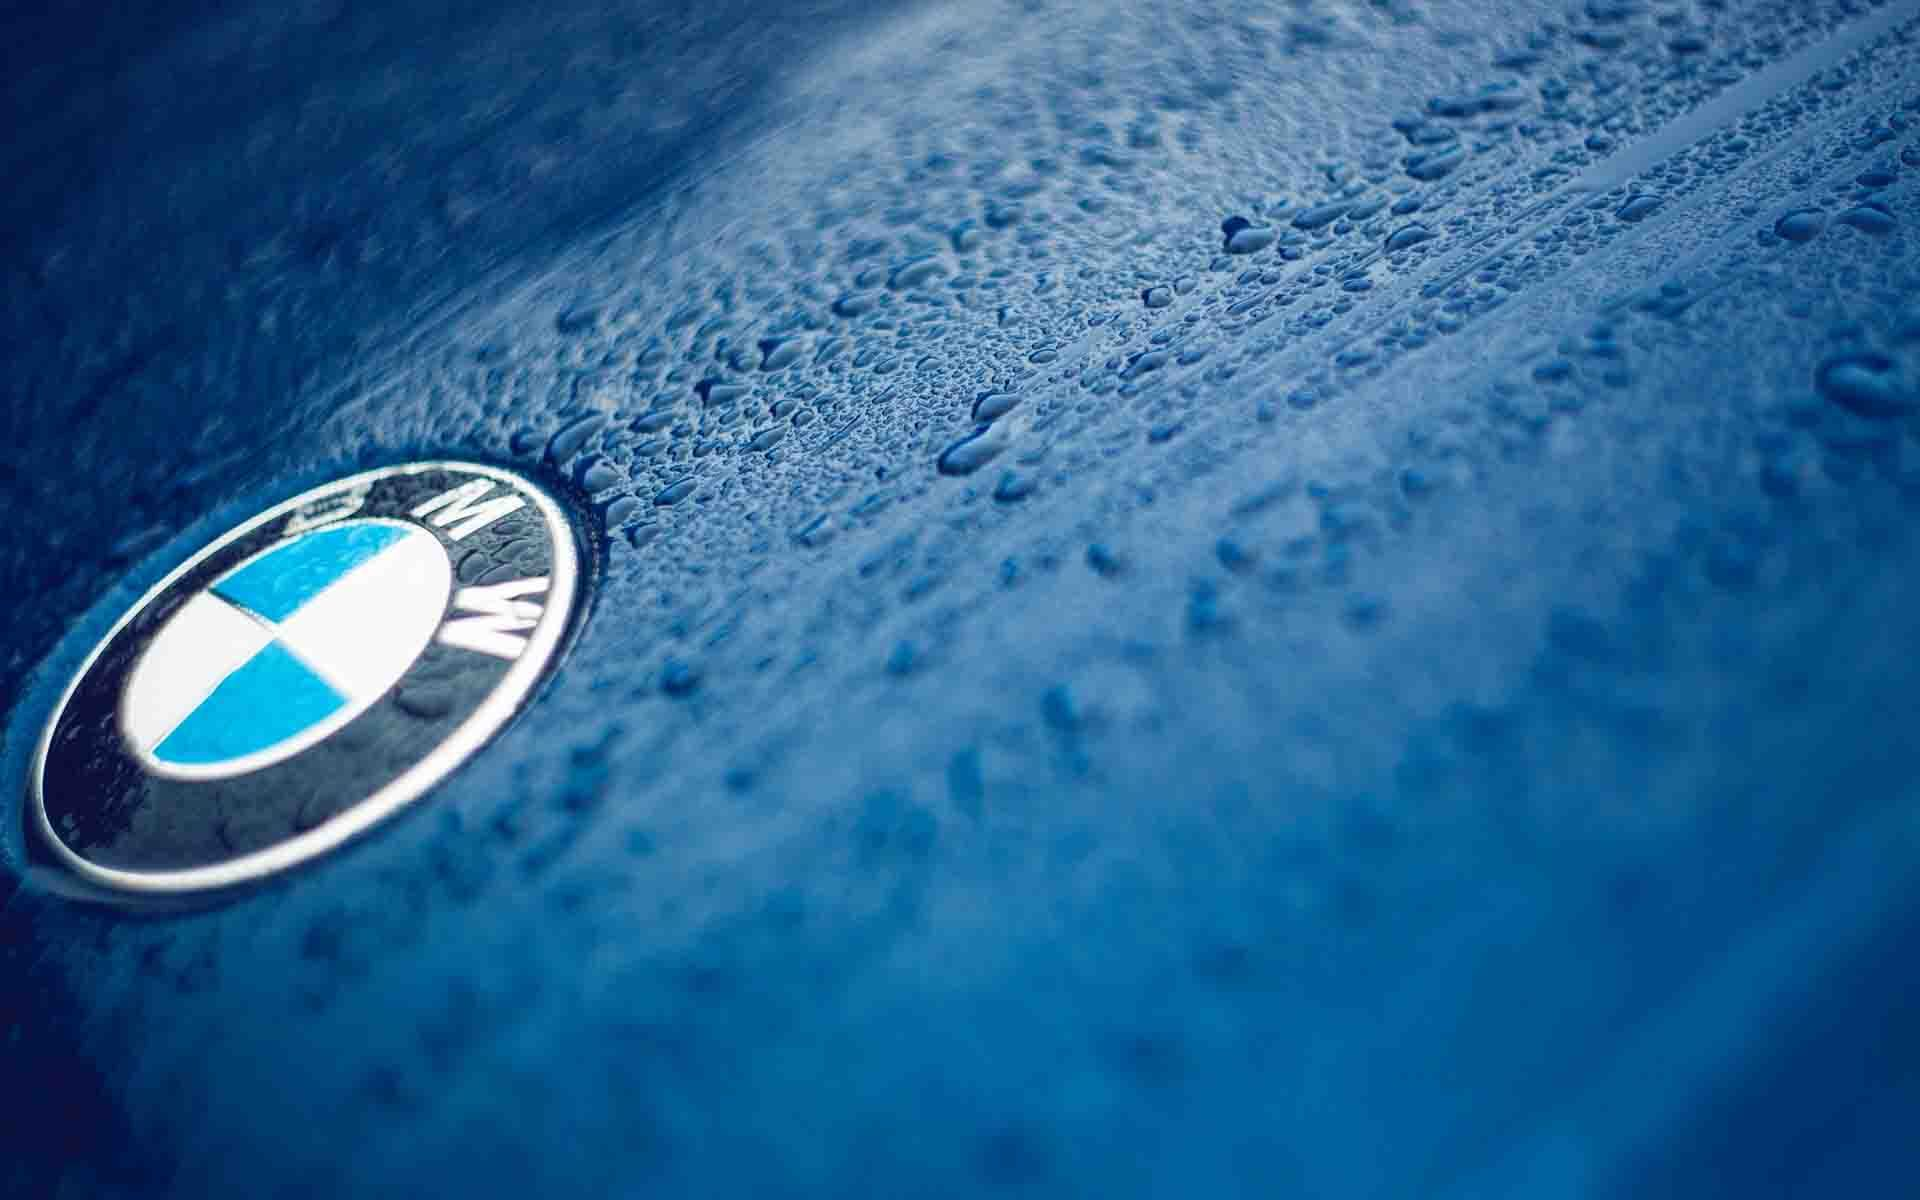 Bmw Logo On Wet Car Wallpaper Bmw Logo Popular Logos Bmw